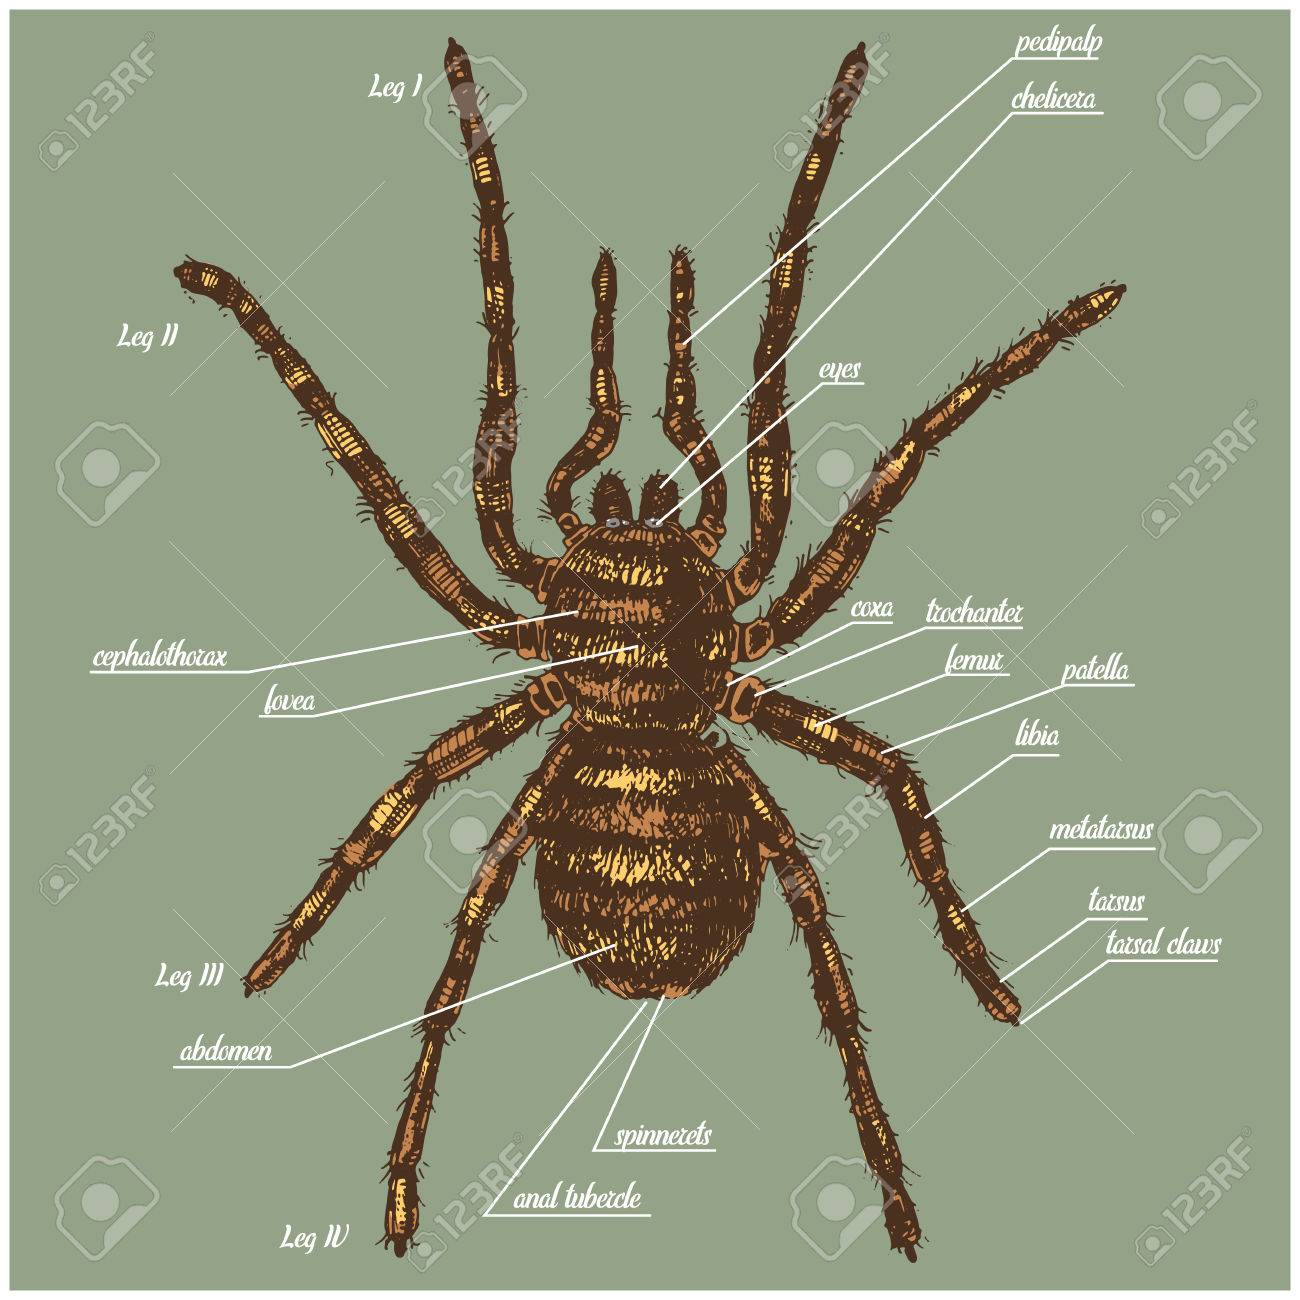 Illustration Of A Spider Anatomy Include All Name Of Animal Parts ...